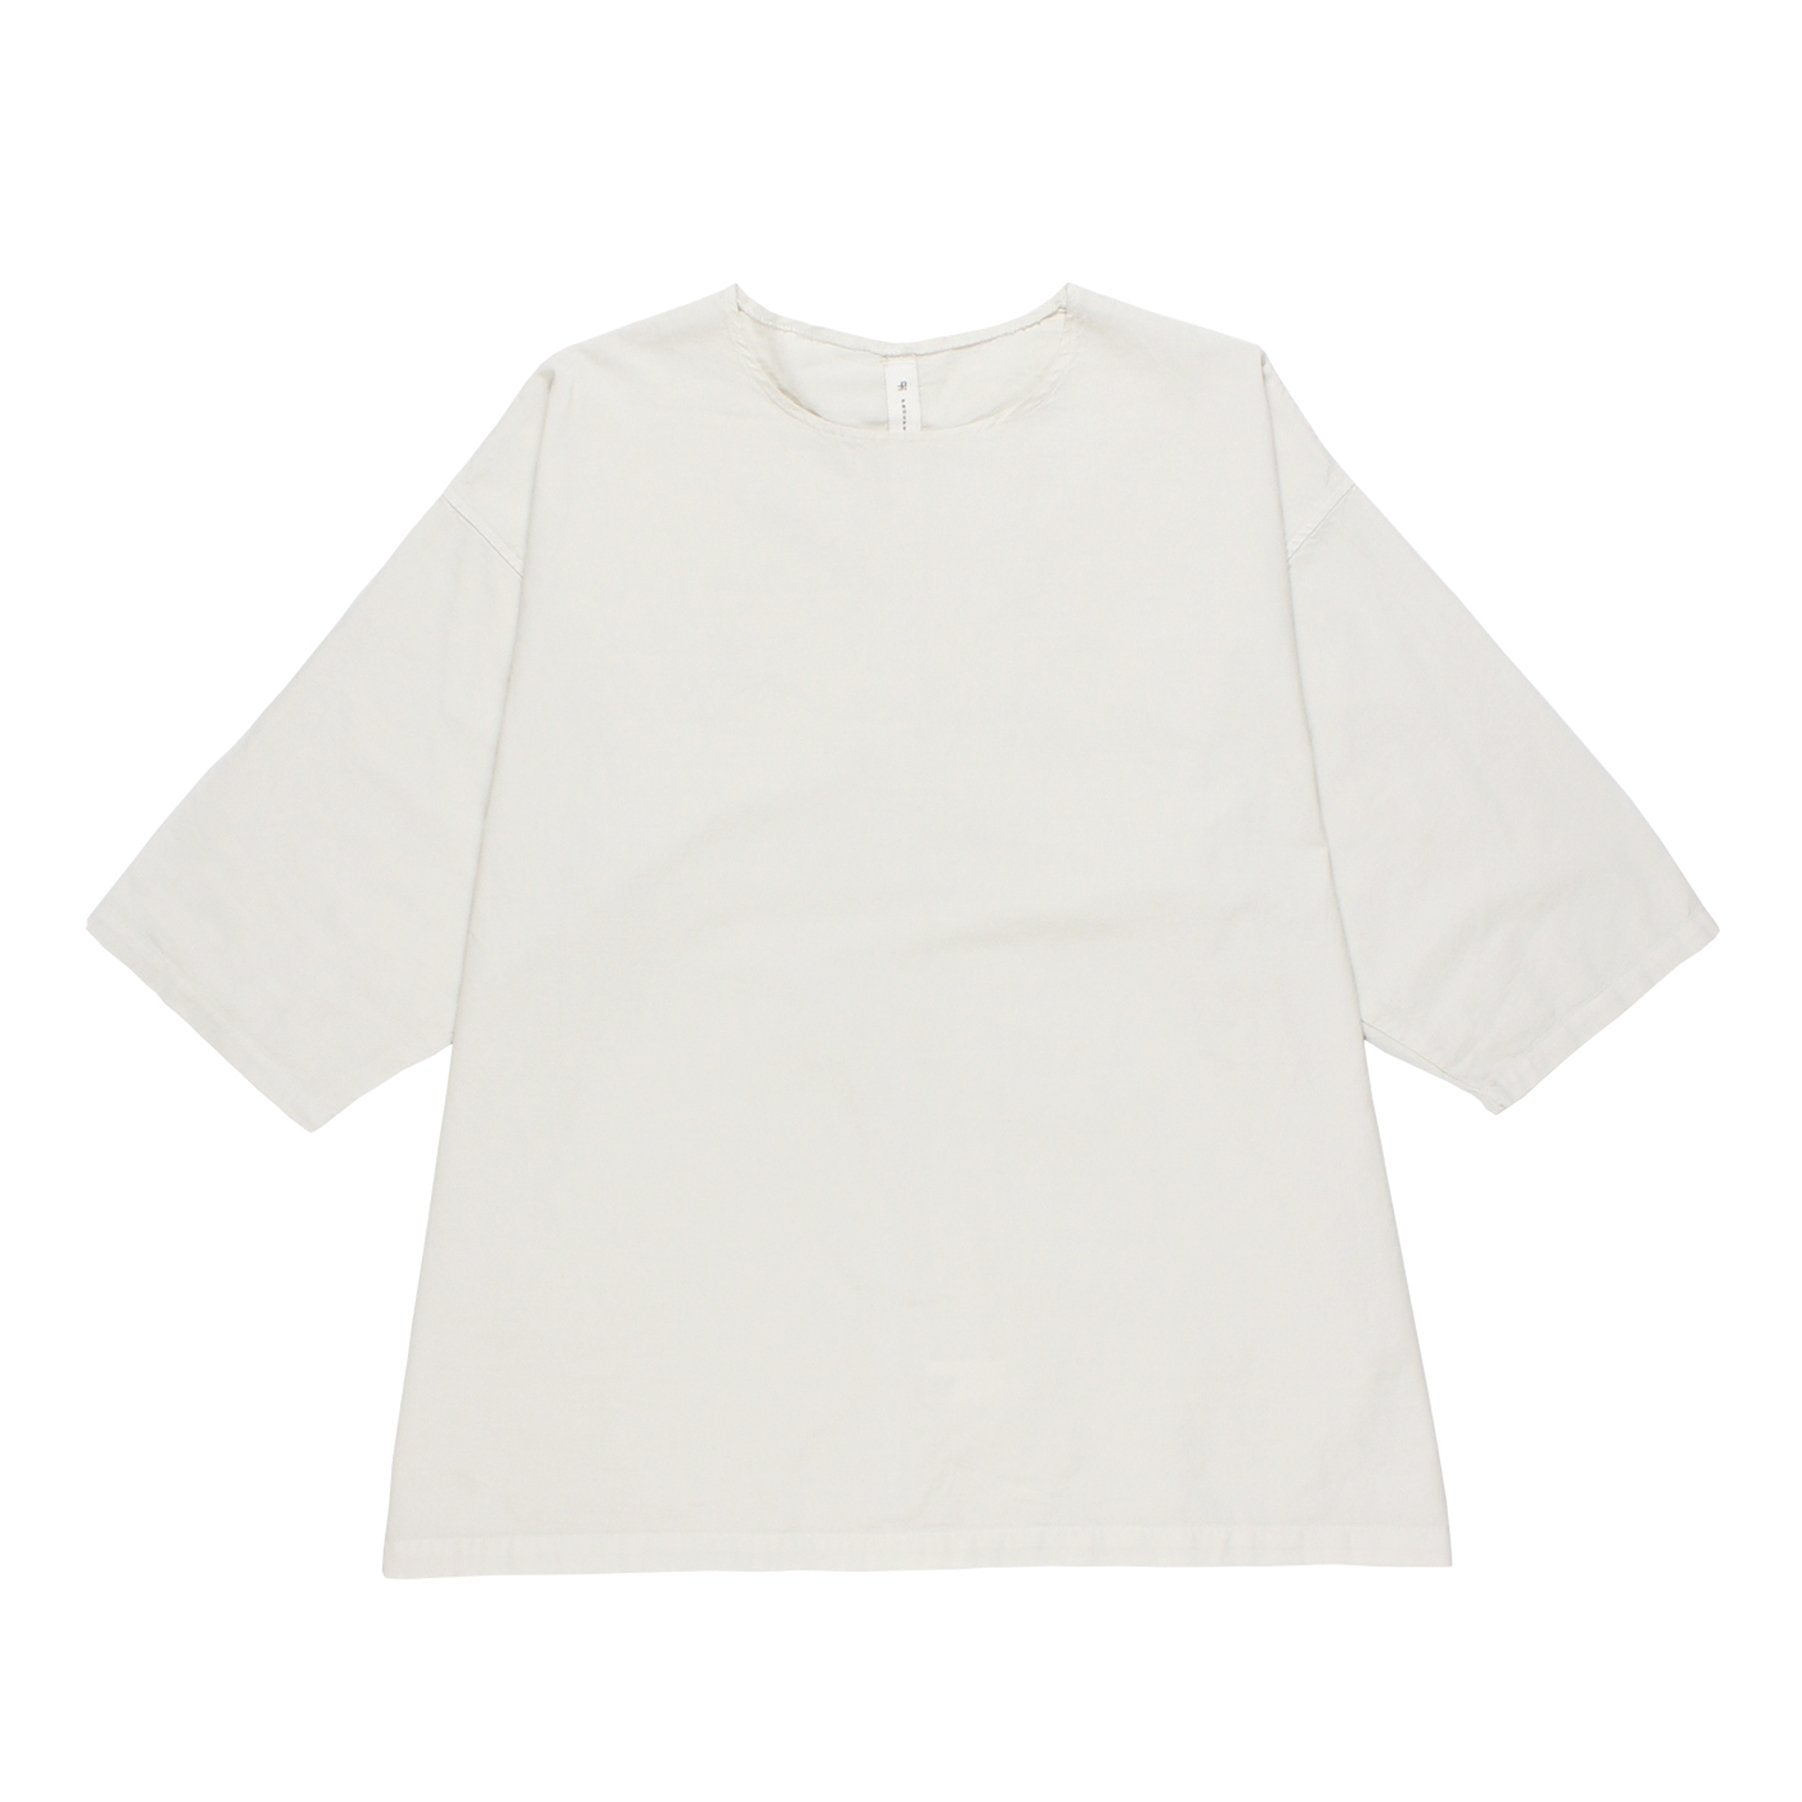 Muro Woven Tee by Prospective Flow - tortoise general store - 100% cotton tee made in Los Angeles